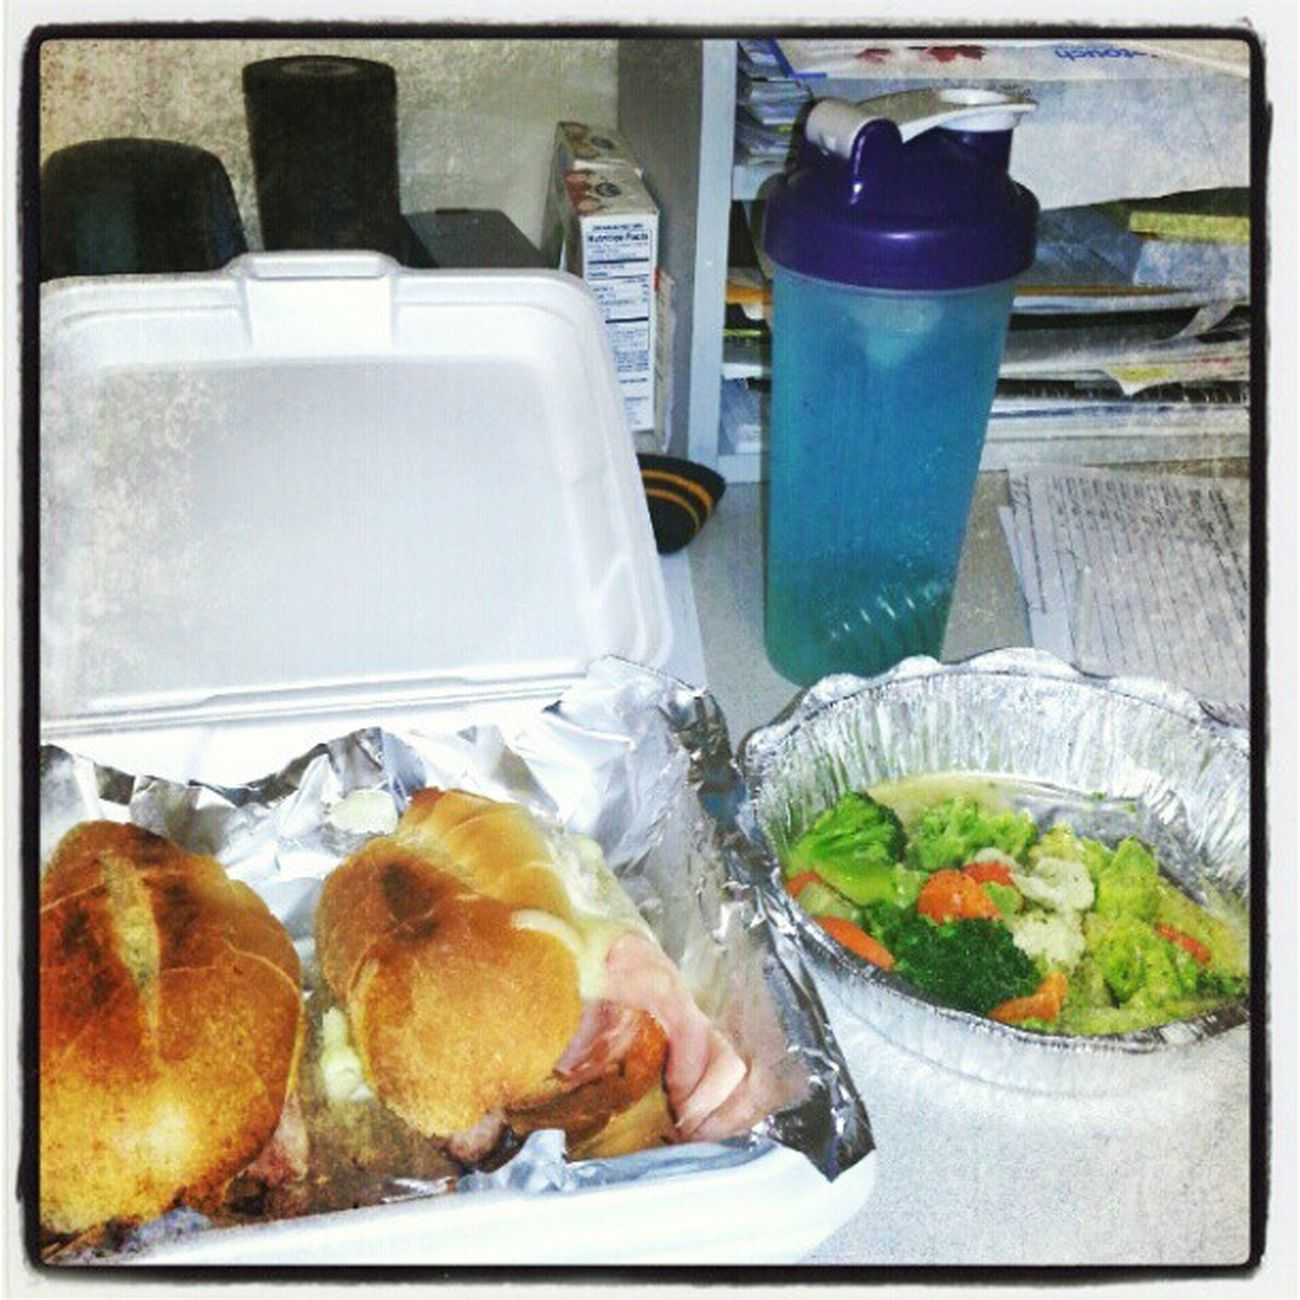 October Fmsphotoday Lunchtime Ham and cheese sandwich and mixed vegetables with flavored water.